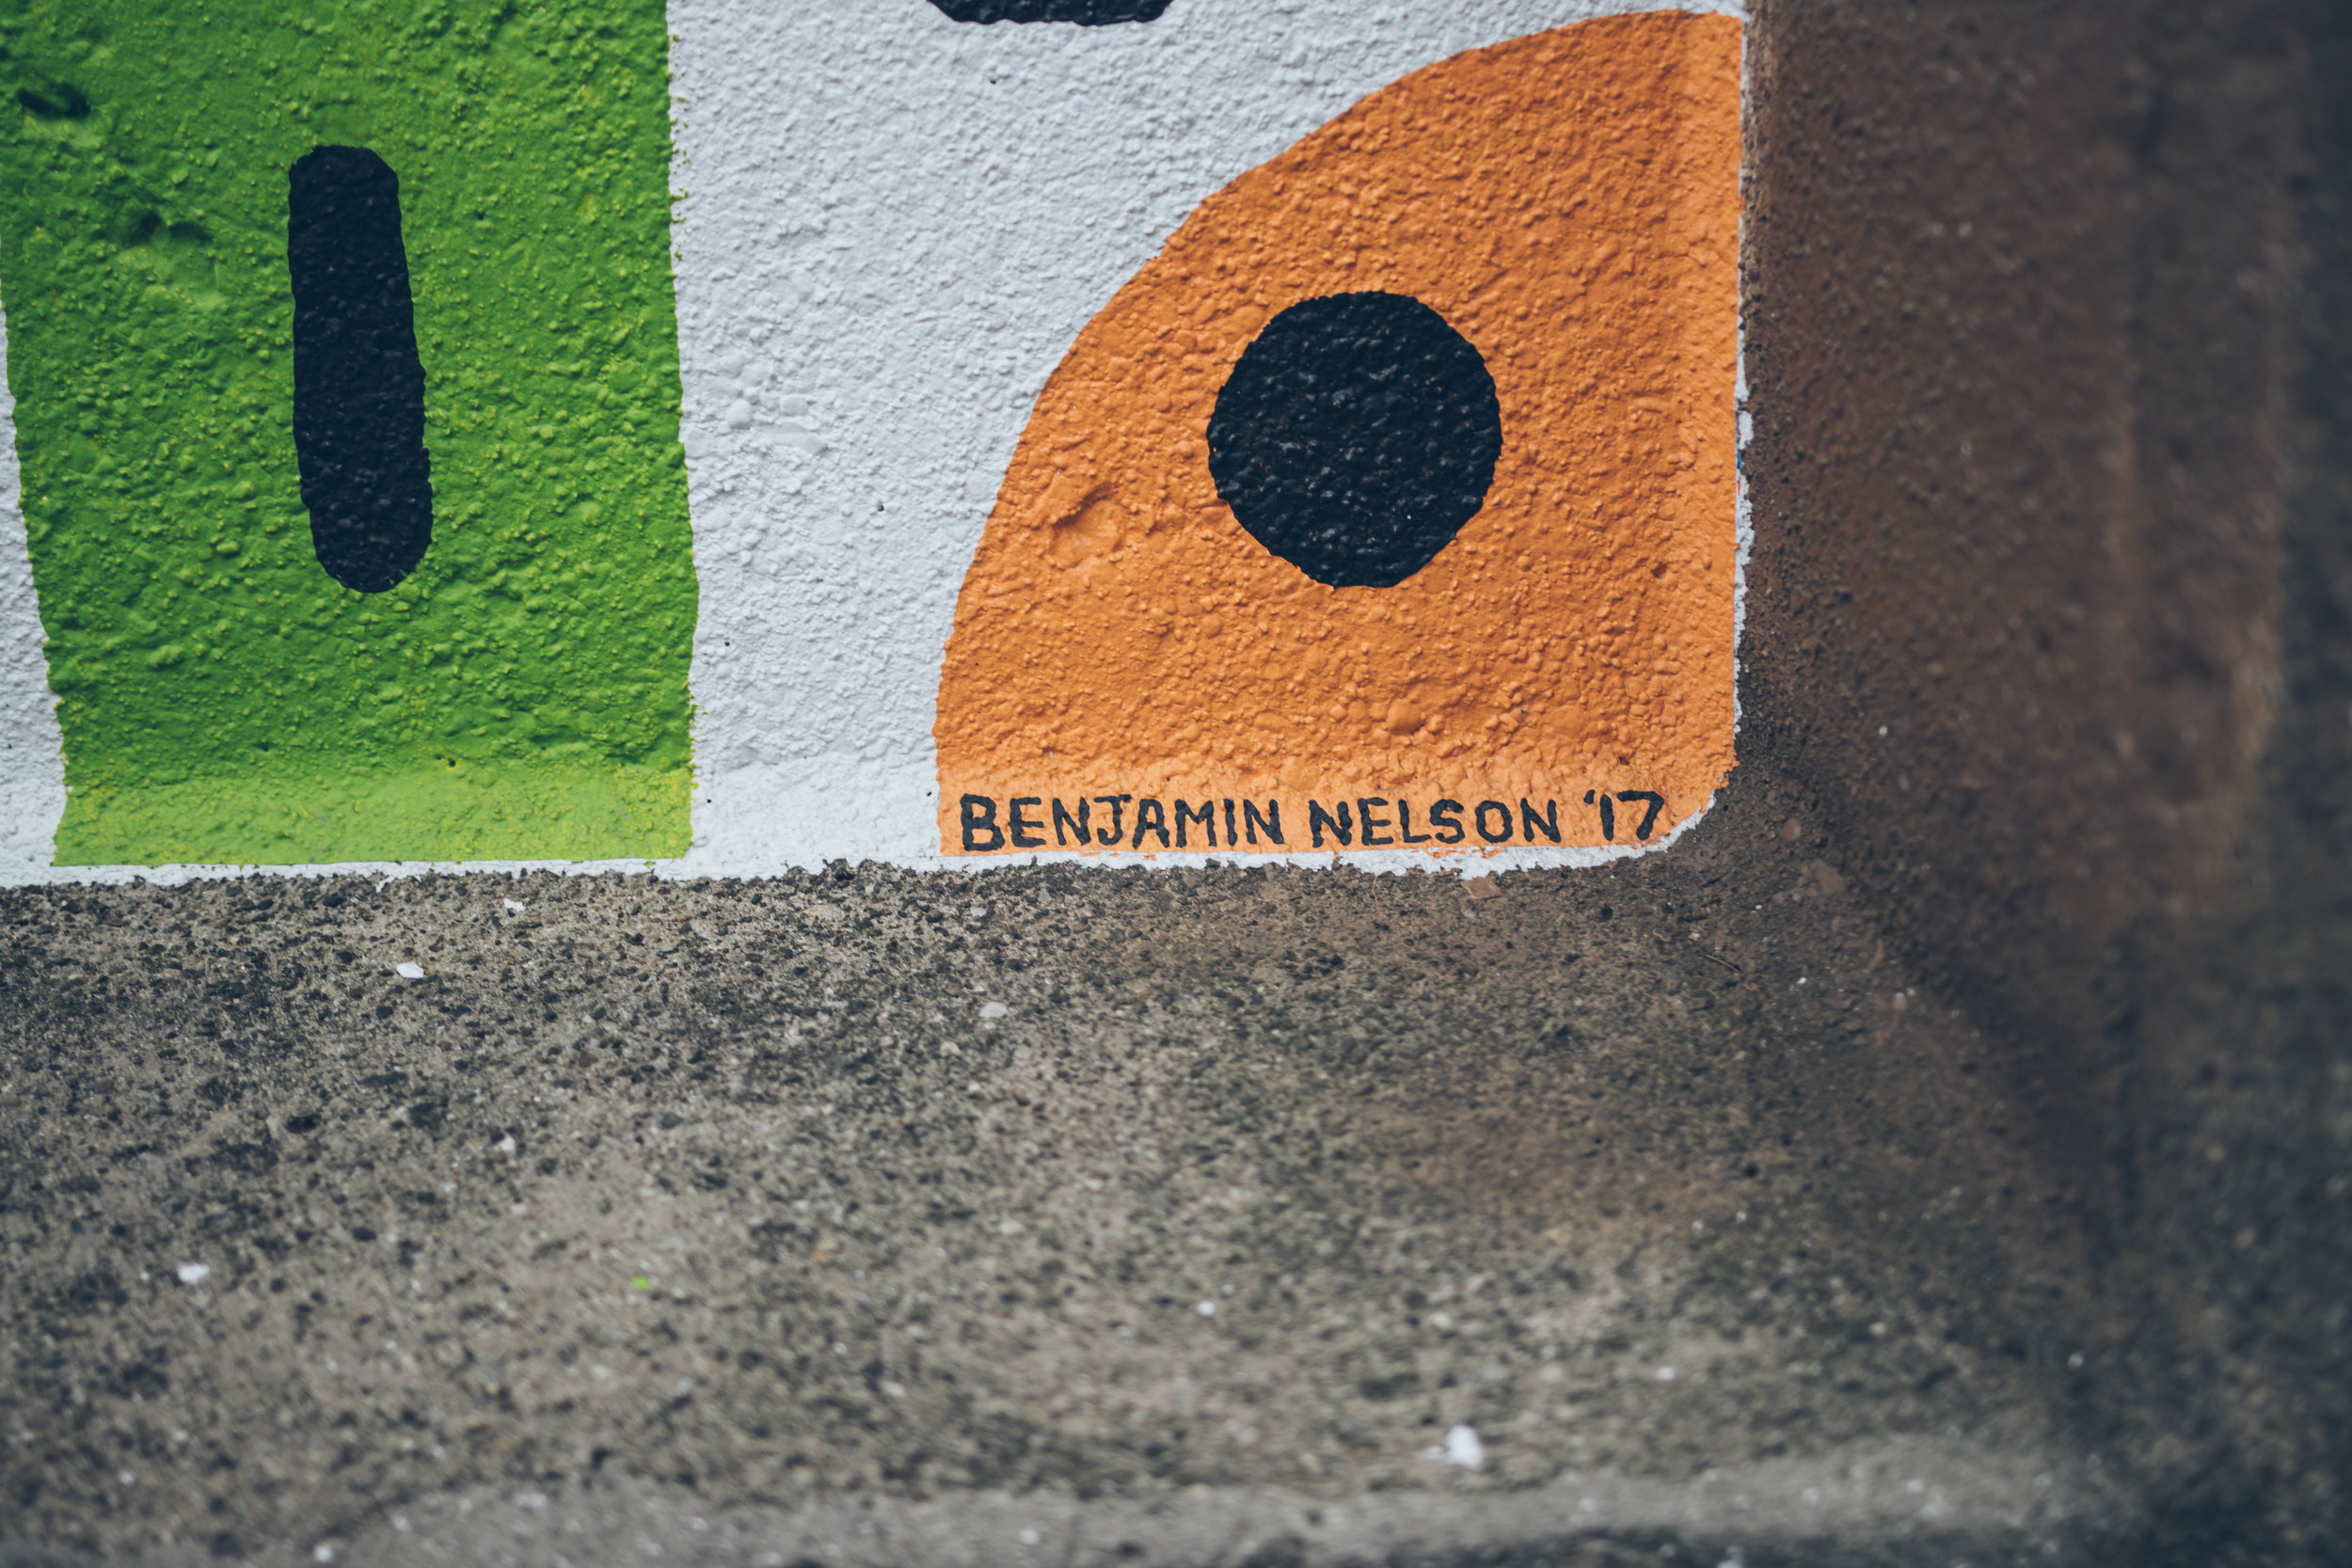 Mural in Oak Park IL, painted by Benjamin Nelson.